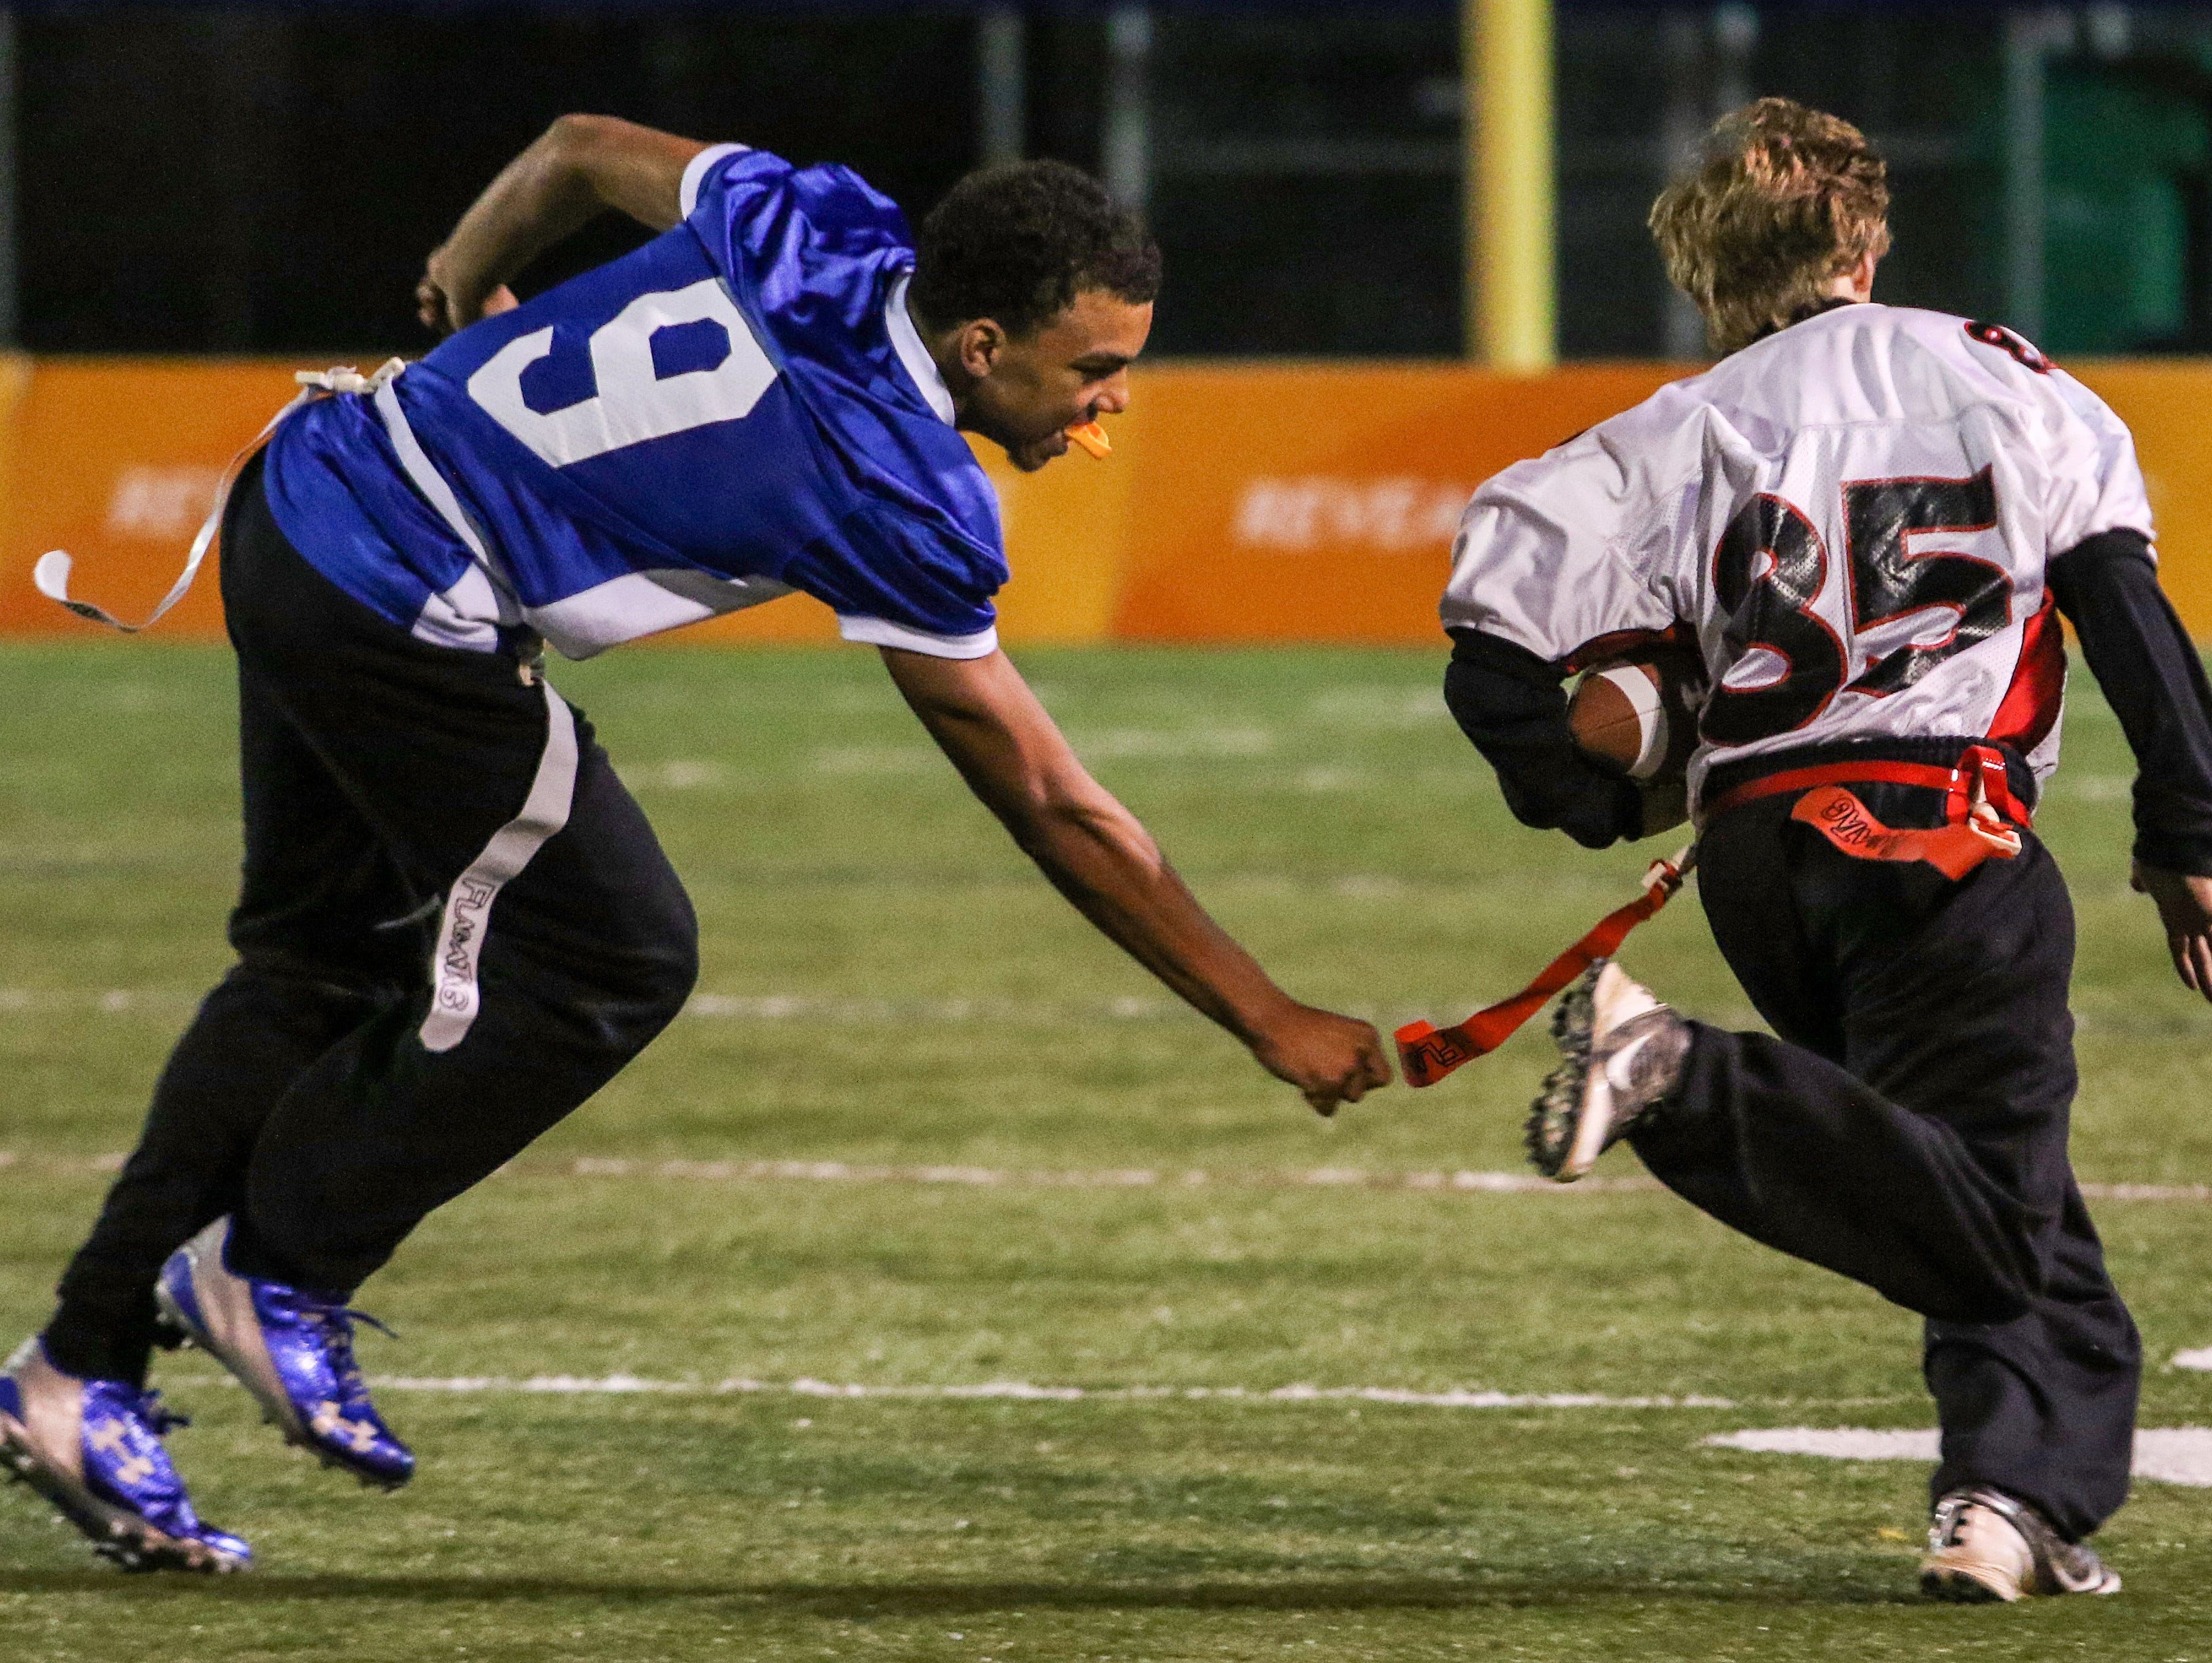 William Penn Unified Football athlete Sam Hensley is too speedy for Middletown Unified Football partner Shane Wilkins, who couldn't quite reach the flag.